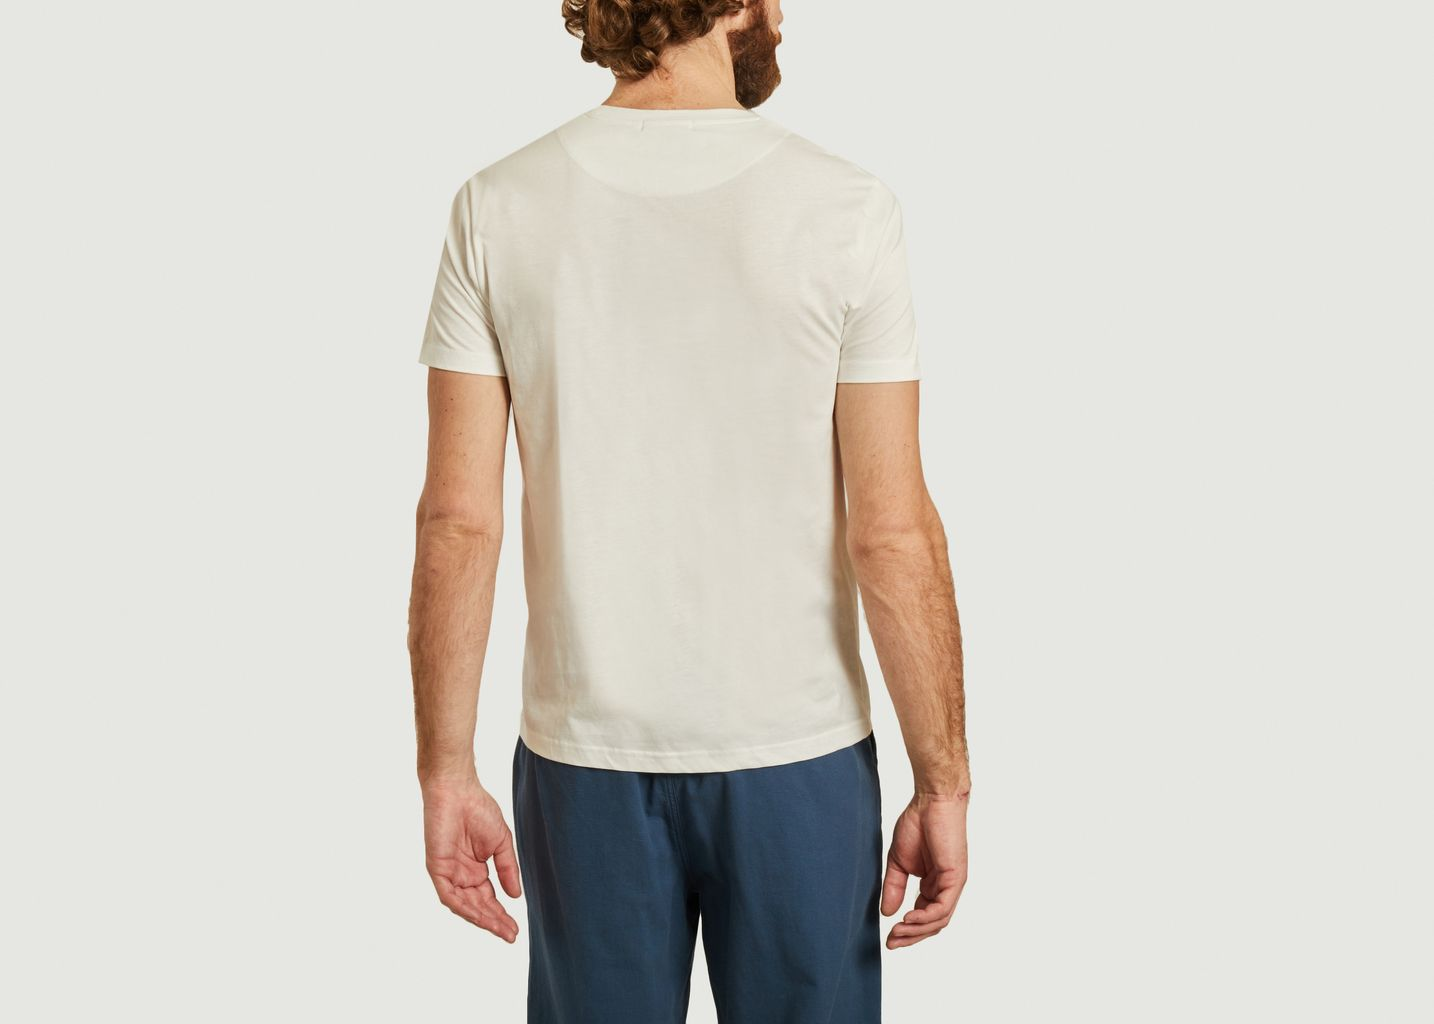 T-shirt Voiture - Olow